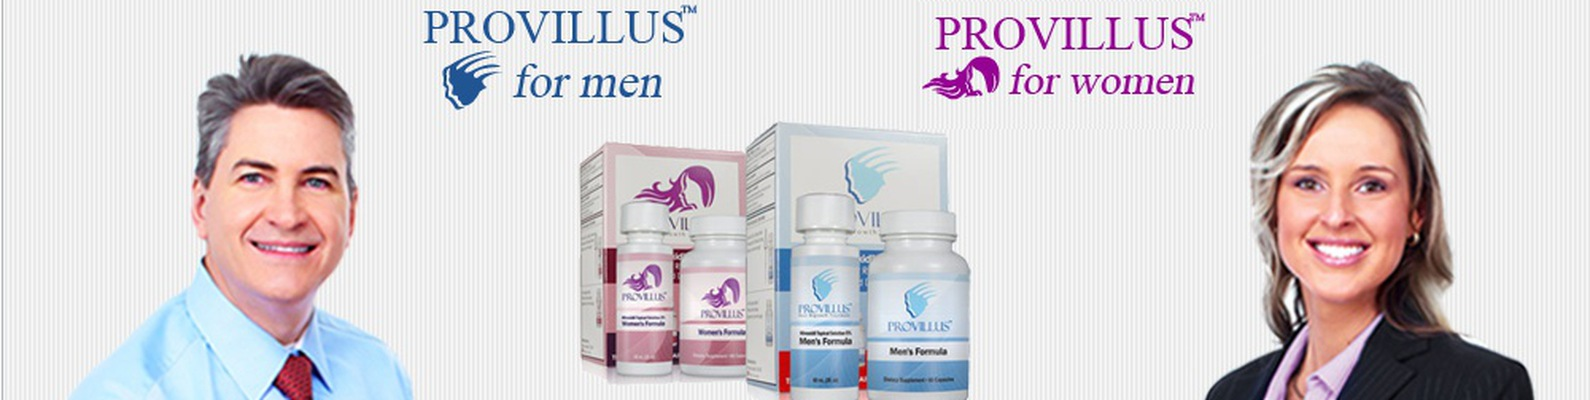 Provillus Fast Hair Regrowth For Men And Women Vk